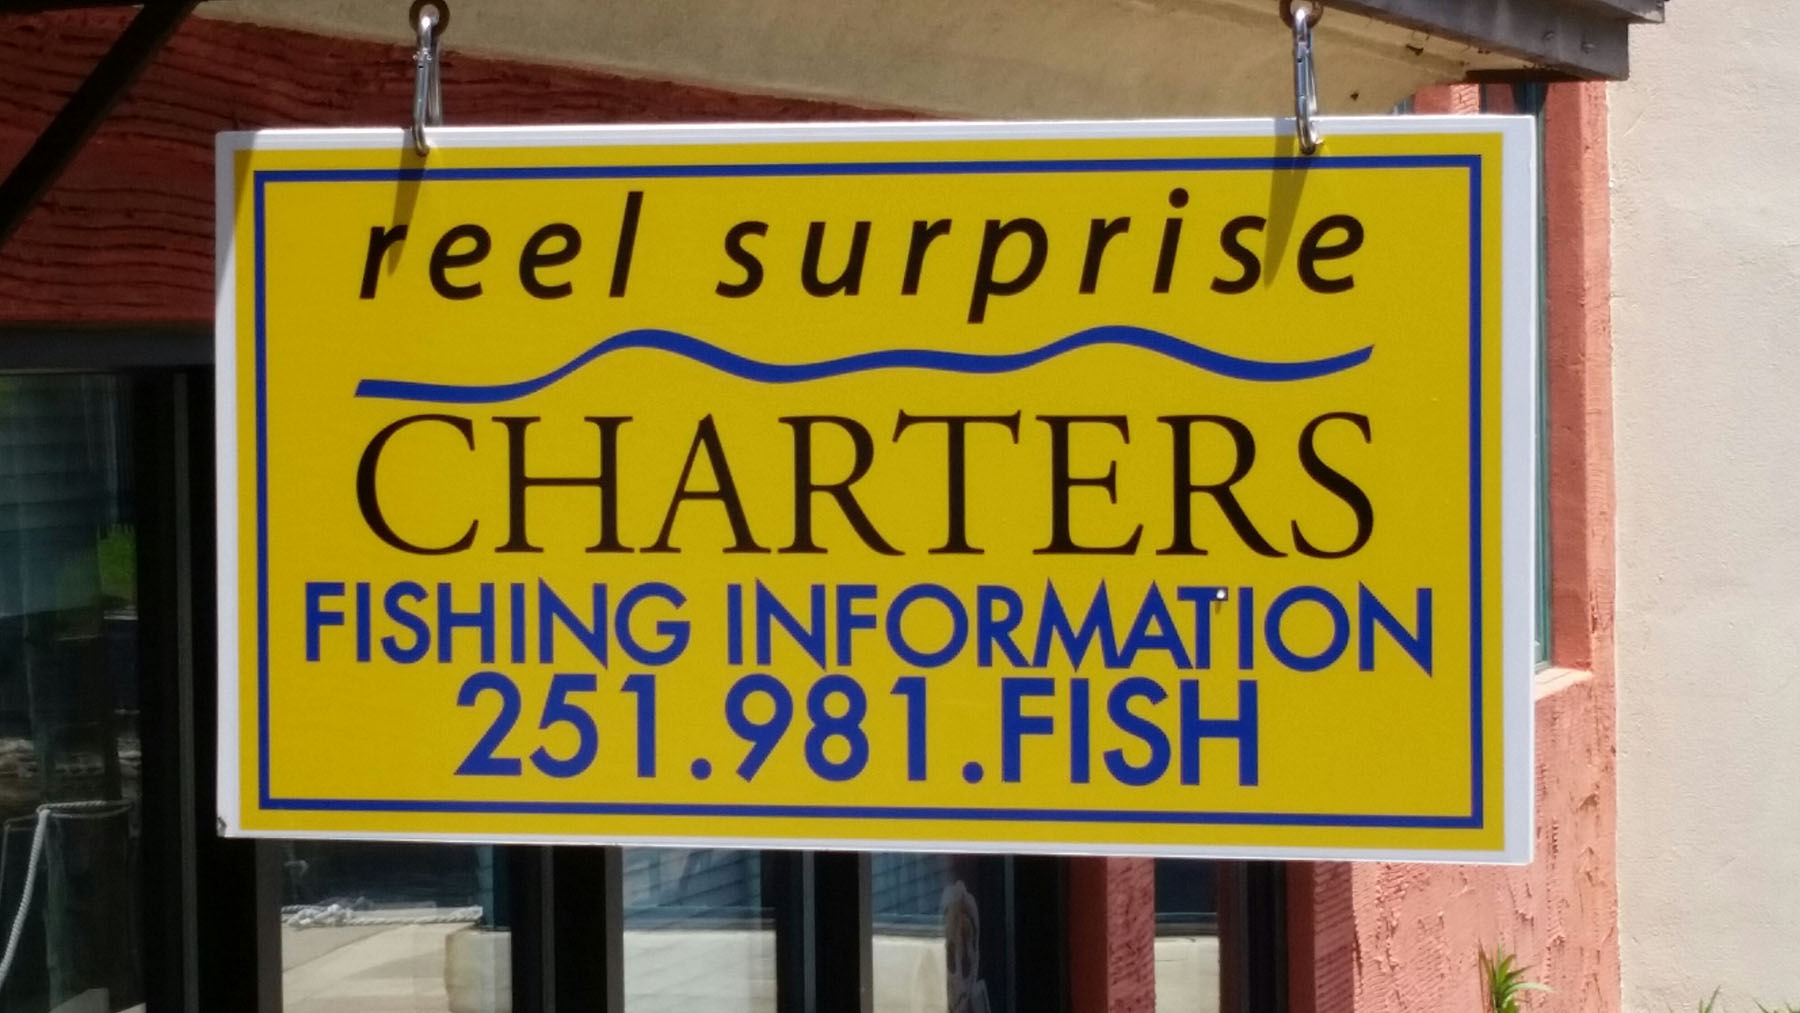 Please call us directly to inquire about our Multi-Passenger Charters.